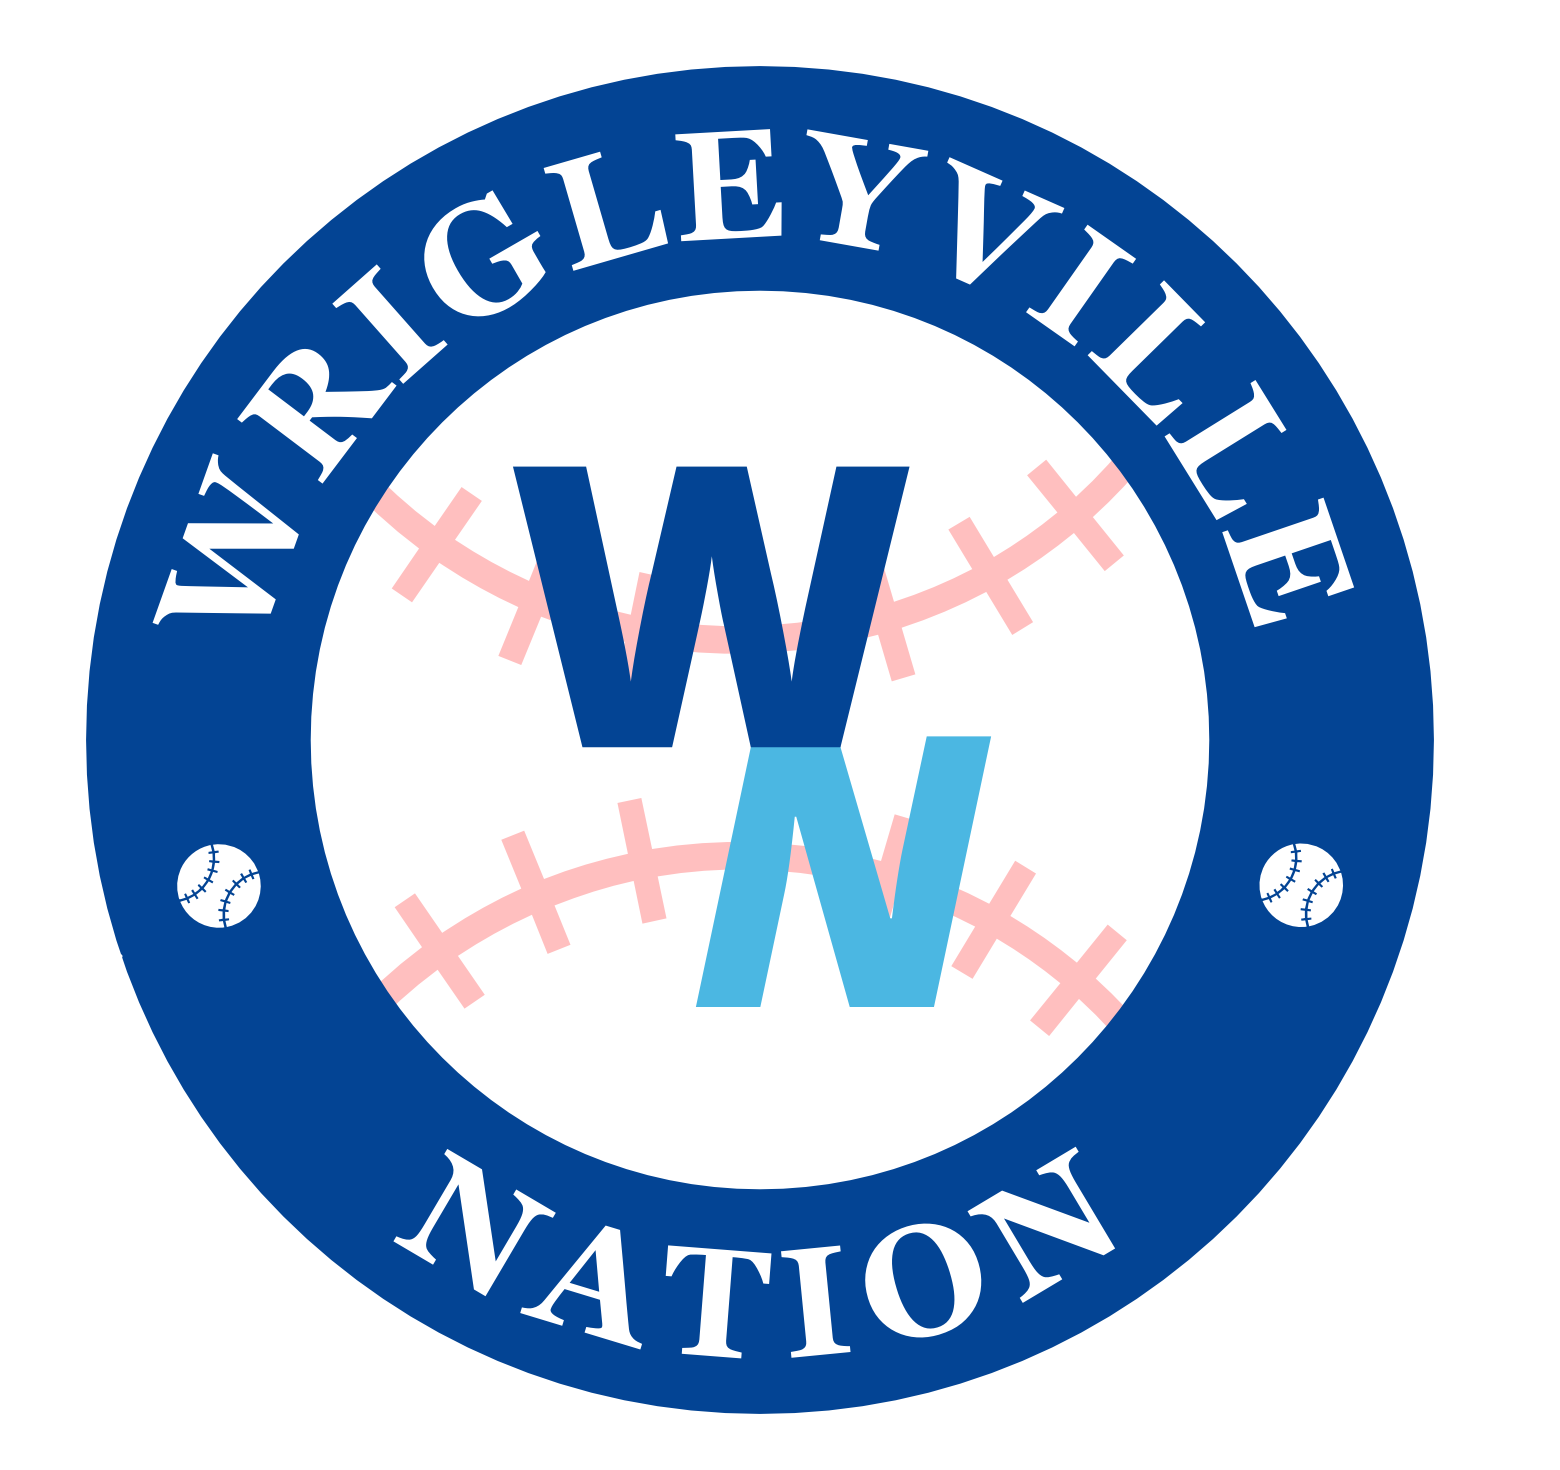 Wrigleyville Nation Ep 264 - Guest: Bryan Smith, Cubs Call Up More Guys, Low Attendance, Javy Gives Mets Fans A Thumbs Down, & More show art